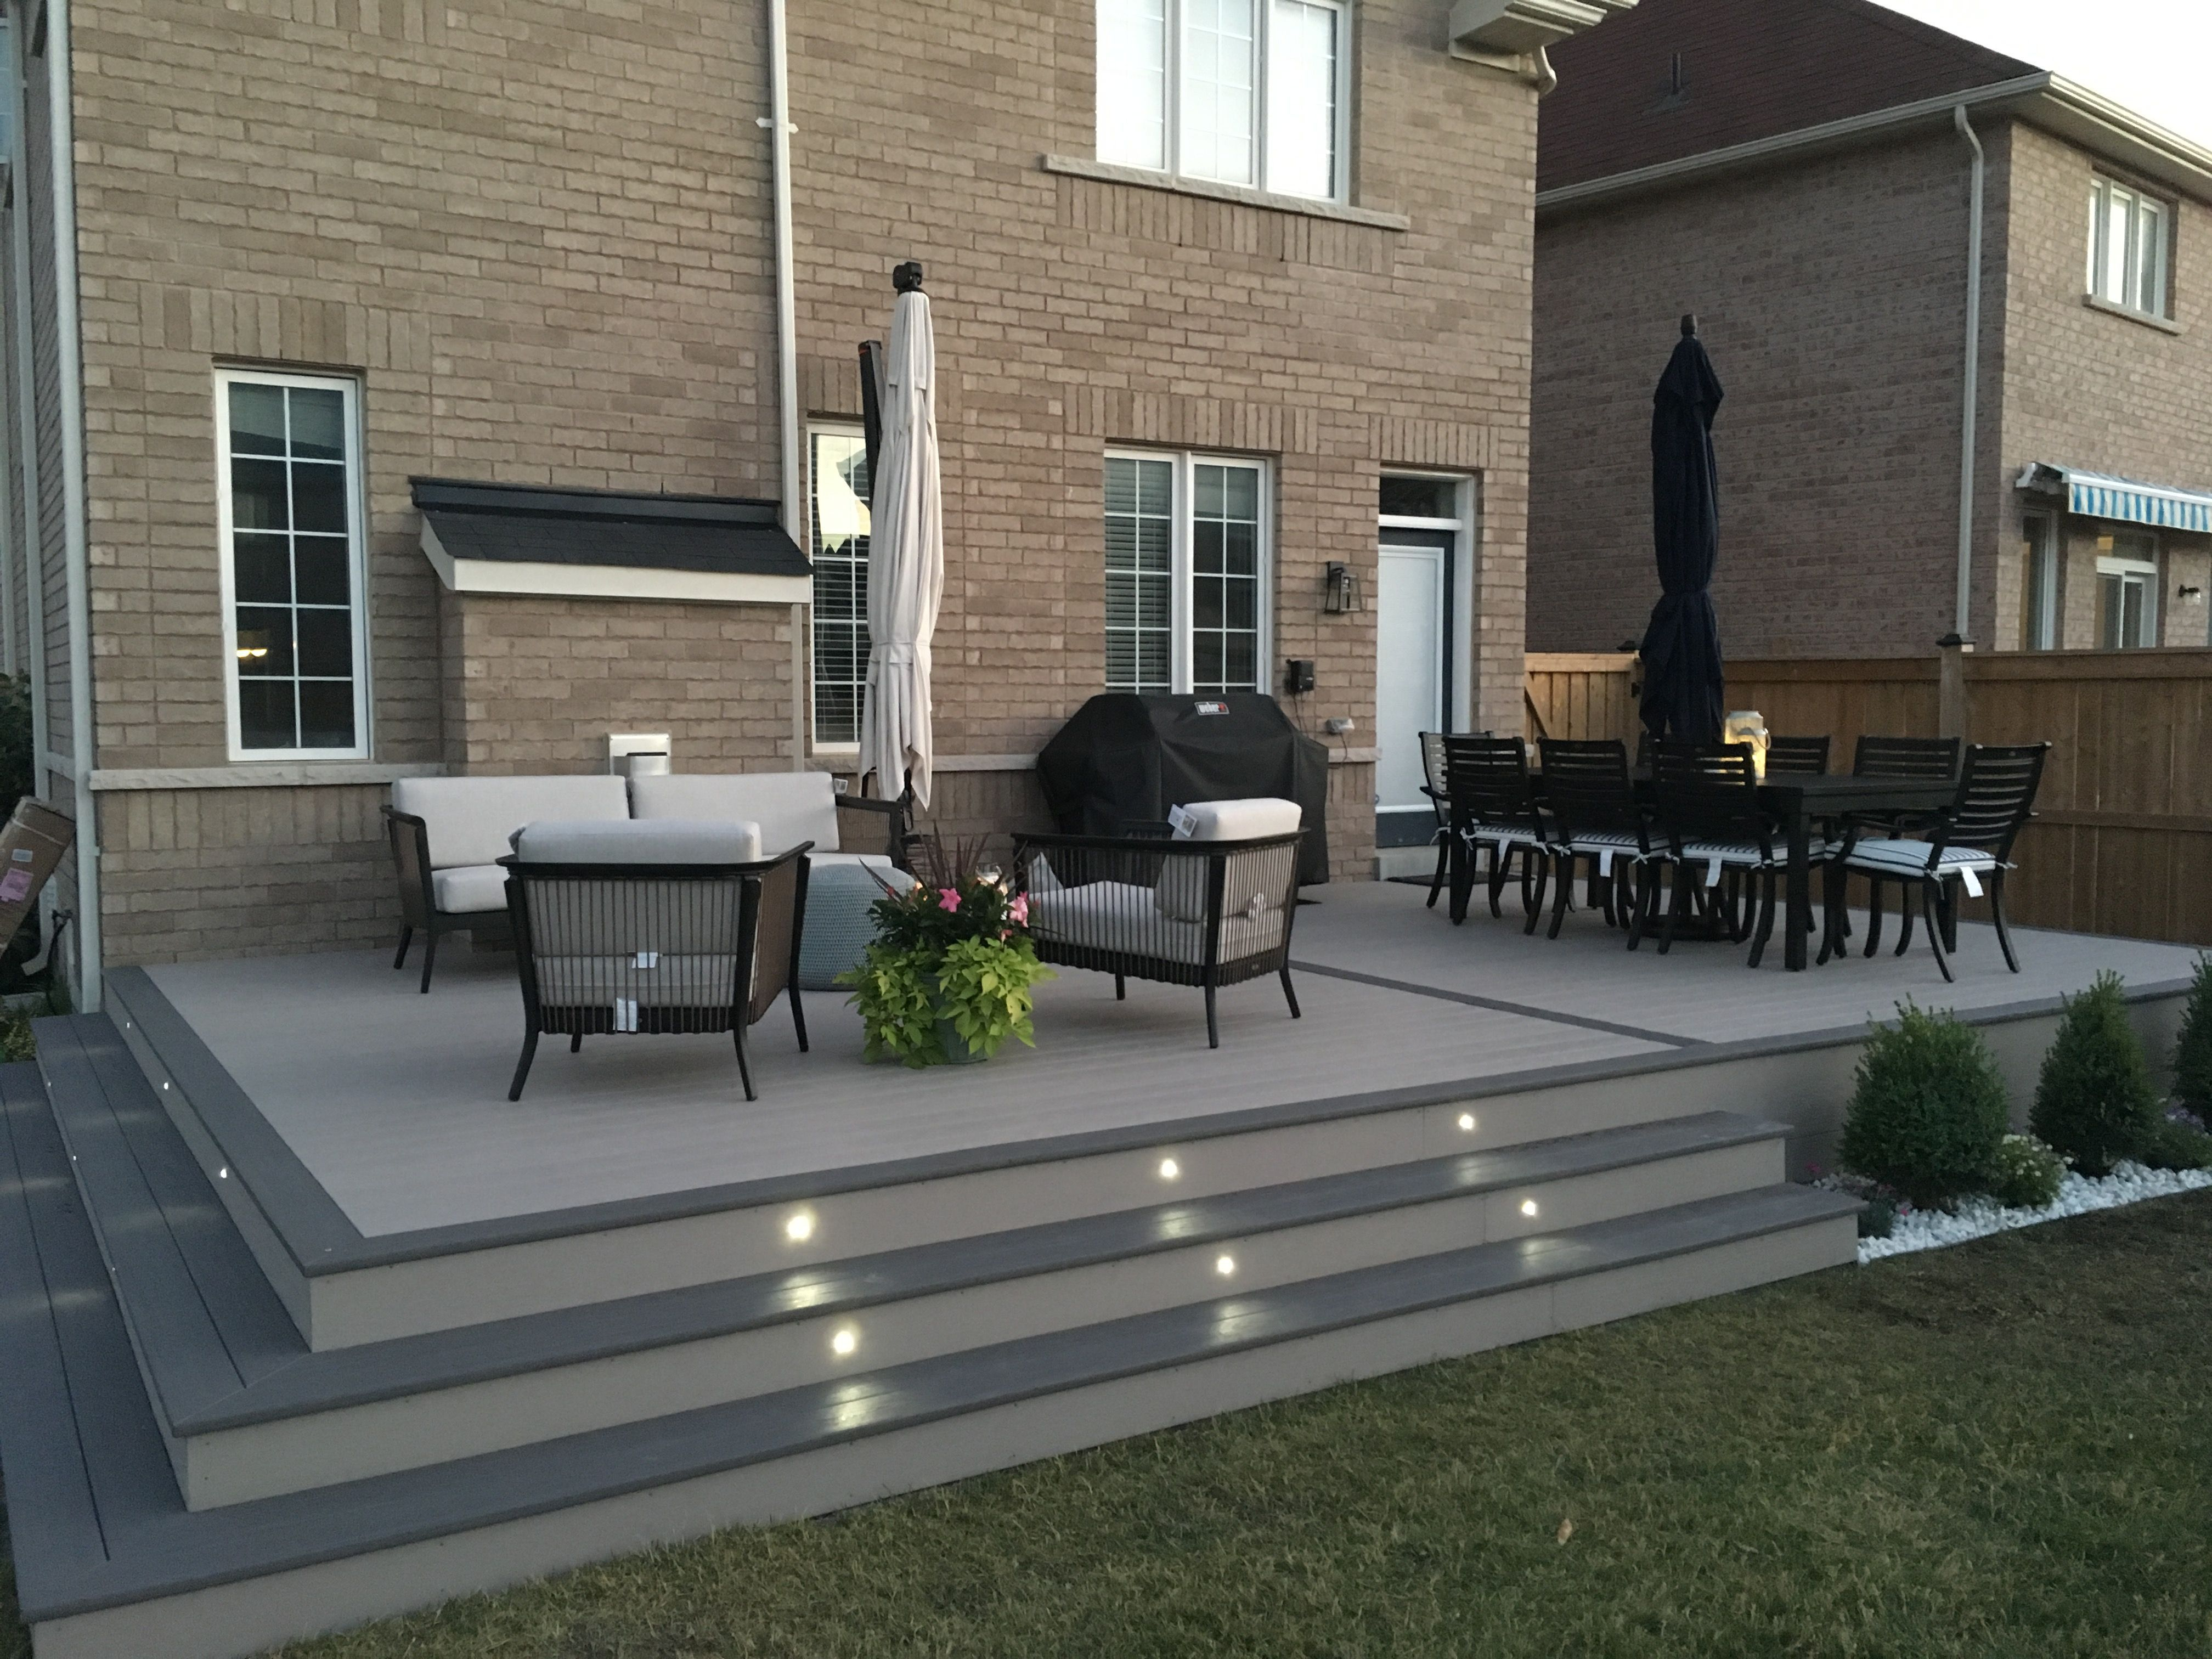 Azek Deck A Mini Pool Is Quickly Set Up Often Surprisingly Cheap And The Suitable Uncomp In 2020 With Images Patio Garden Design Backyard Landscaping Designs Backyard Patio